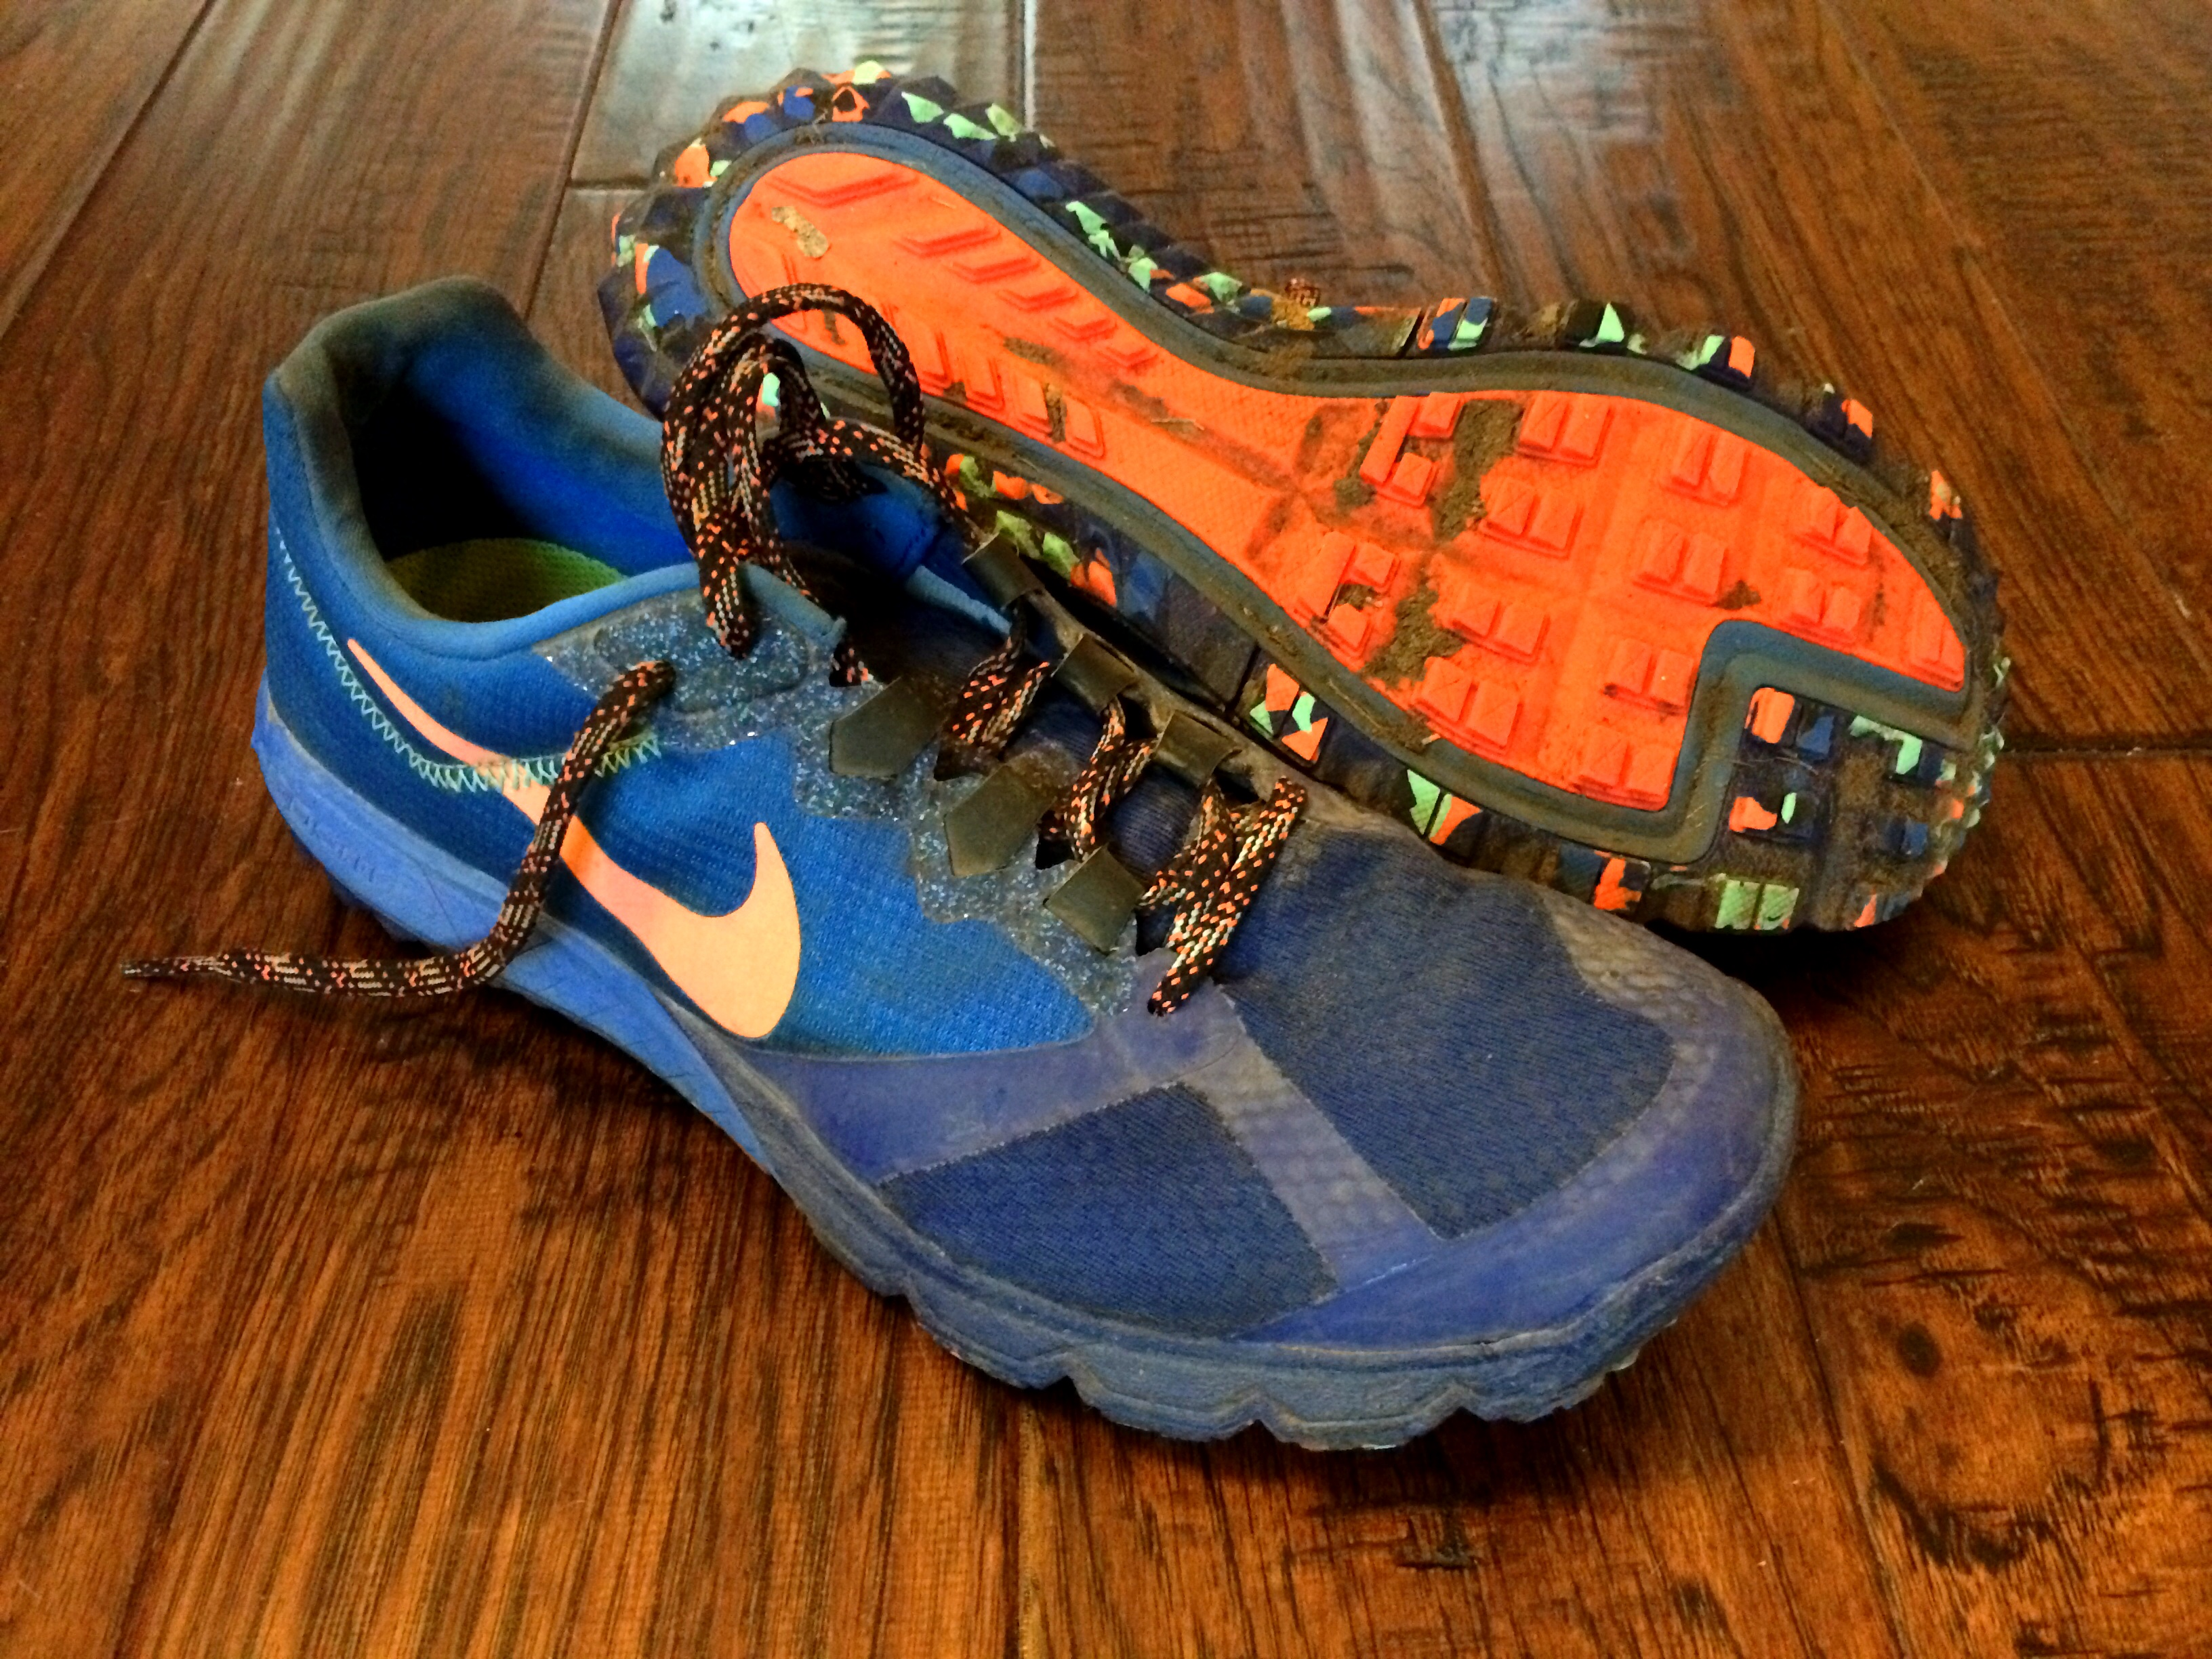 Nike Zoom Wildhorse: these are the shoes I wore for my first ever ultra win